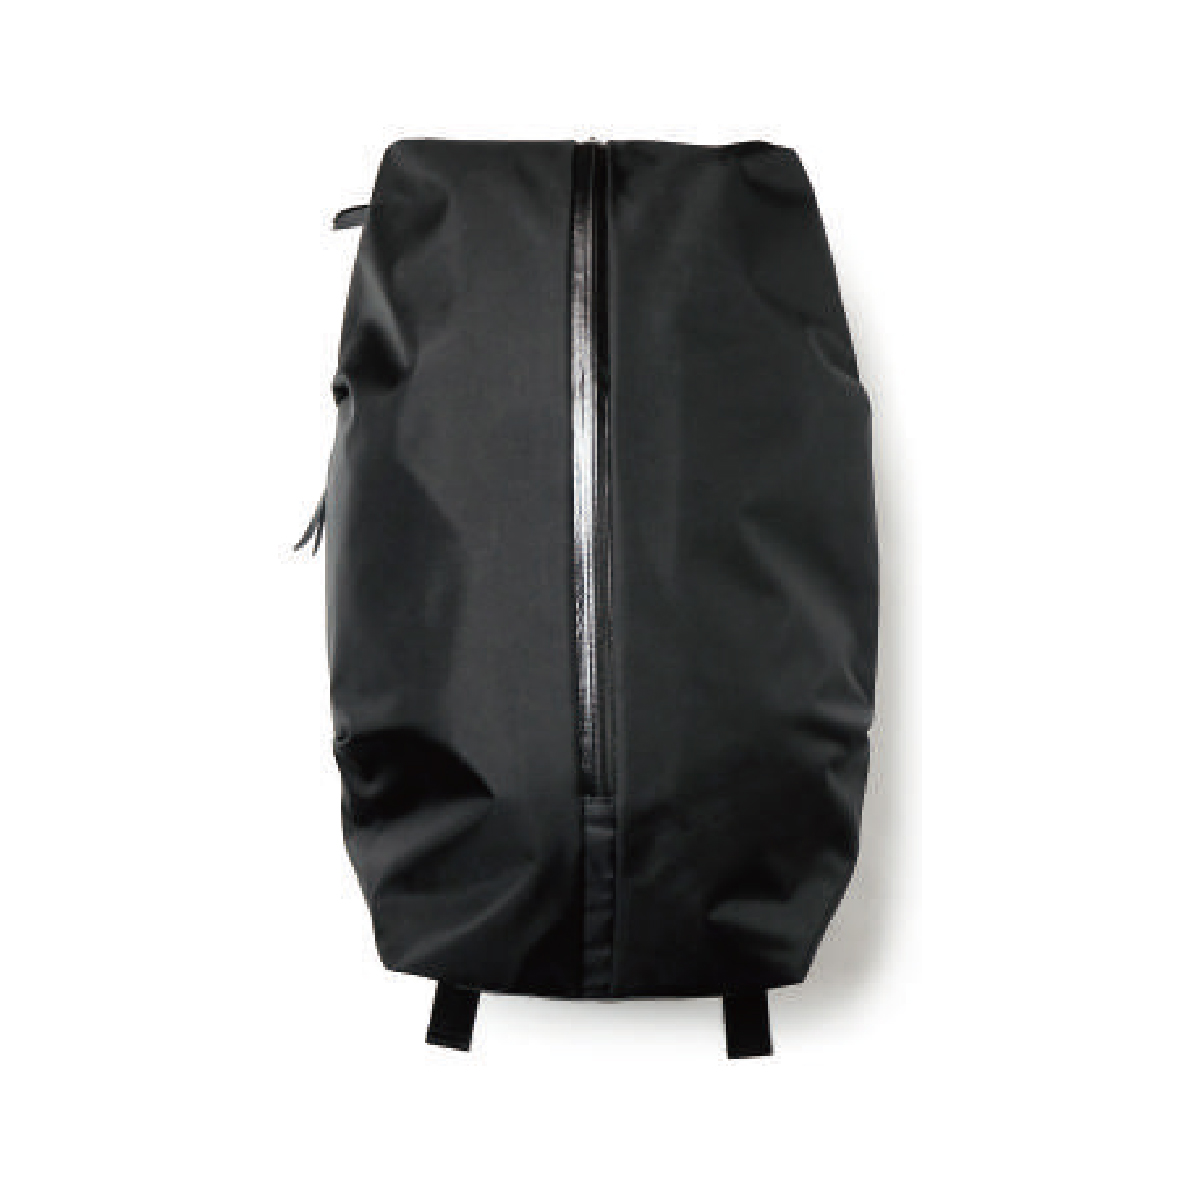 LIVERAL Egg Pack M Black series バックパック25L L1100 【日本製】 全3種 Super water repellent / Nylon 840denier / Parafin canvas